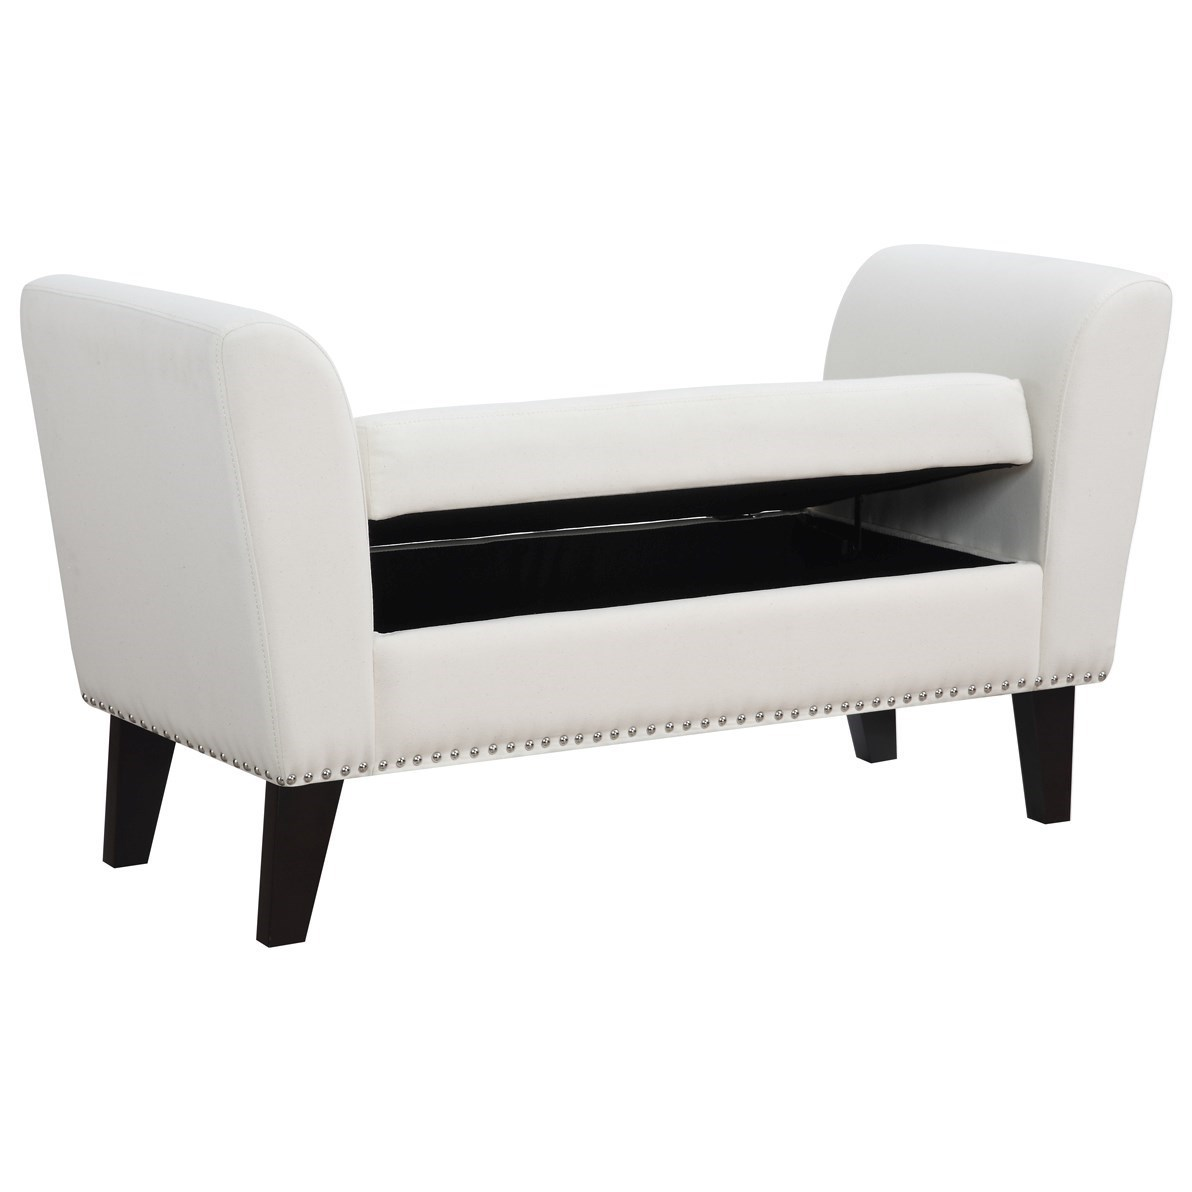 Diana Upholstered Storage Bench by Emerald at Northeast Factory Direct